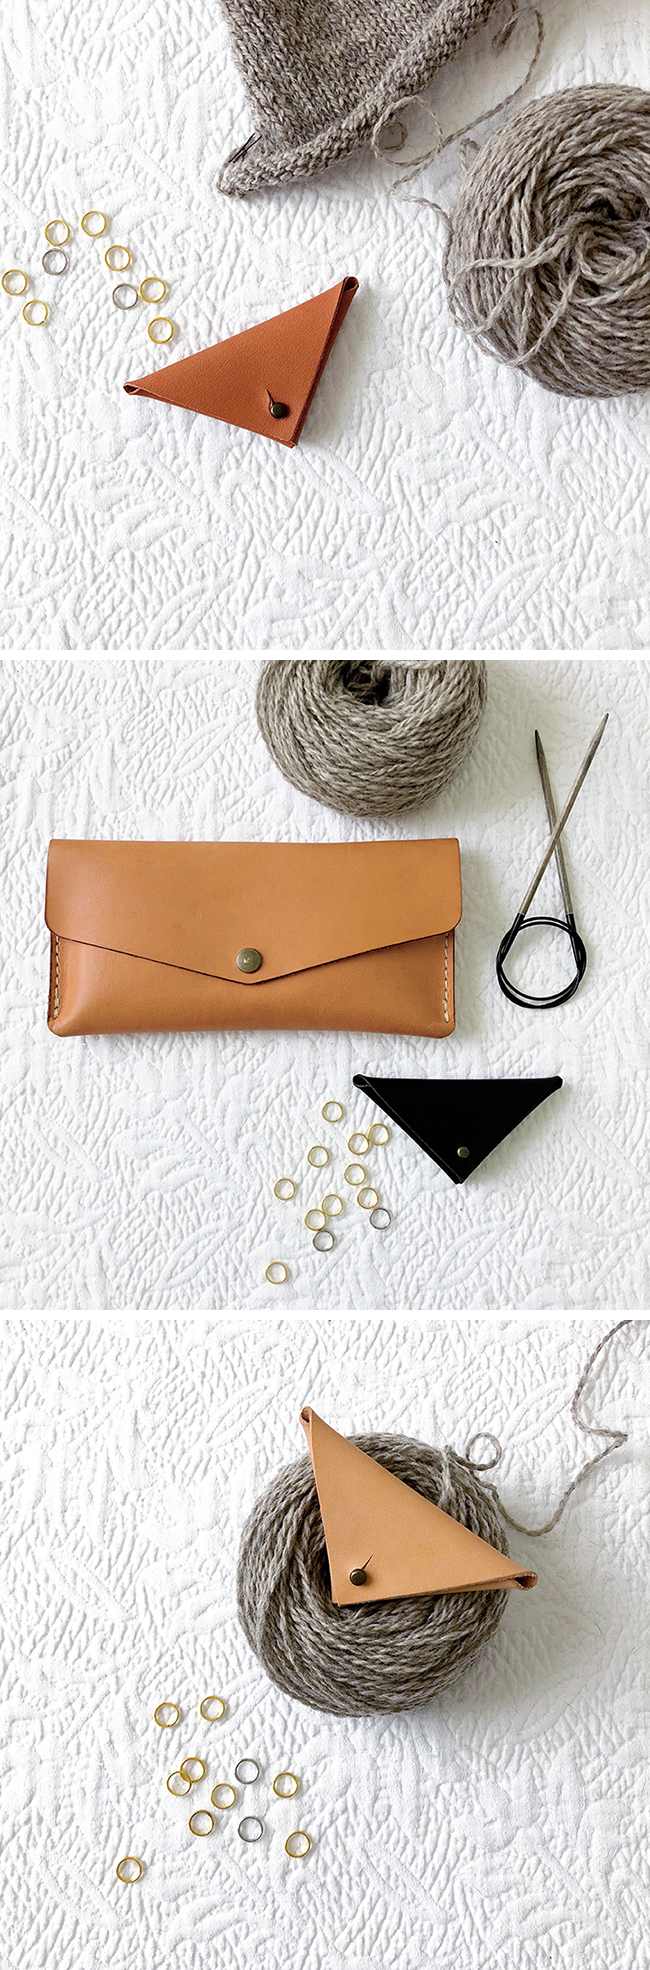 Fringe Supply leather stitch marker pouch, now in 3 colors!